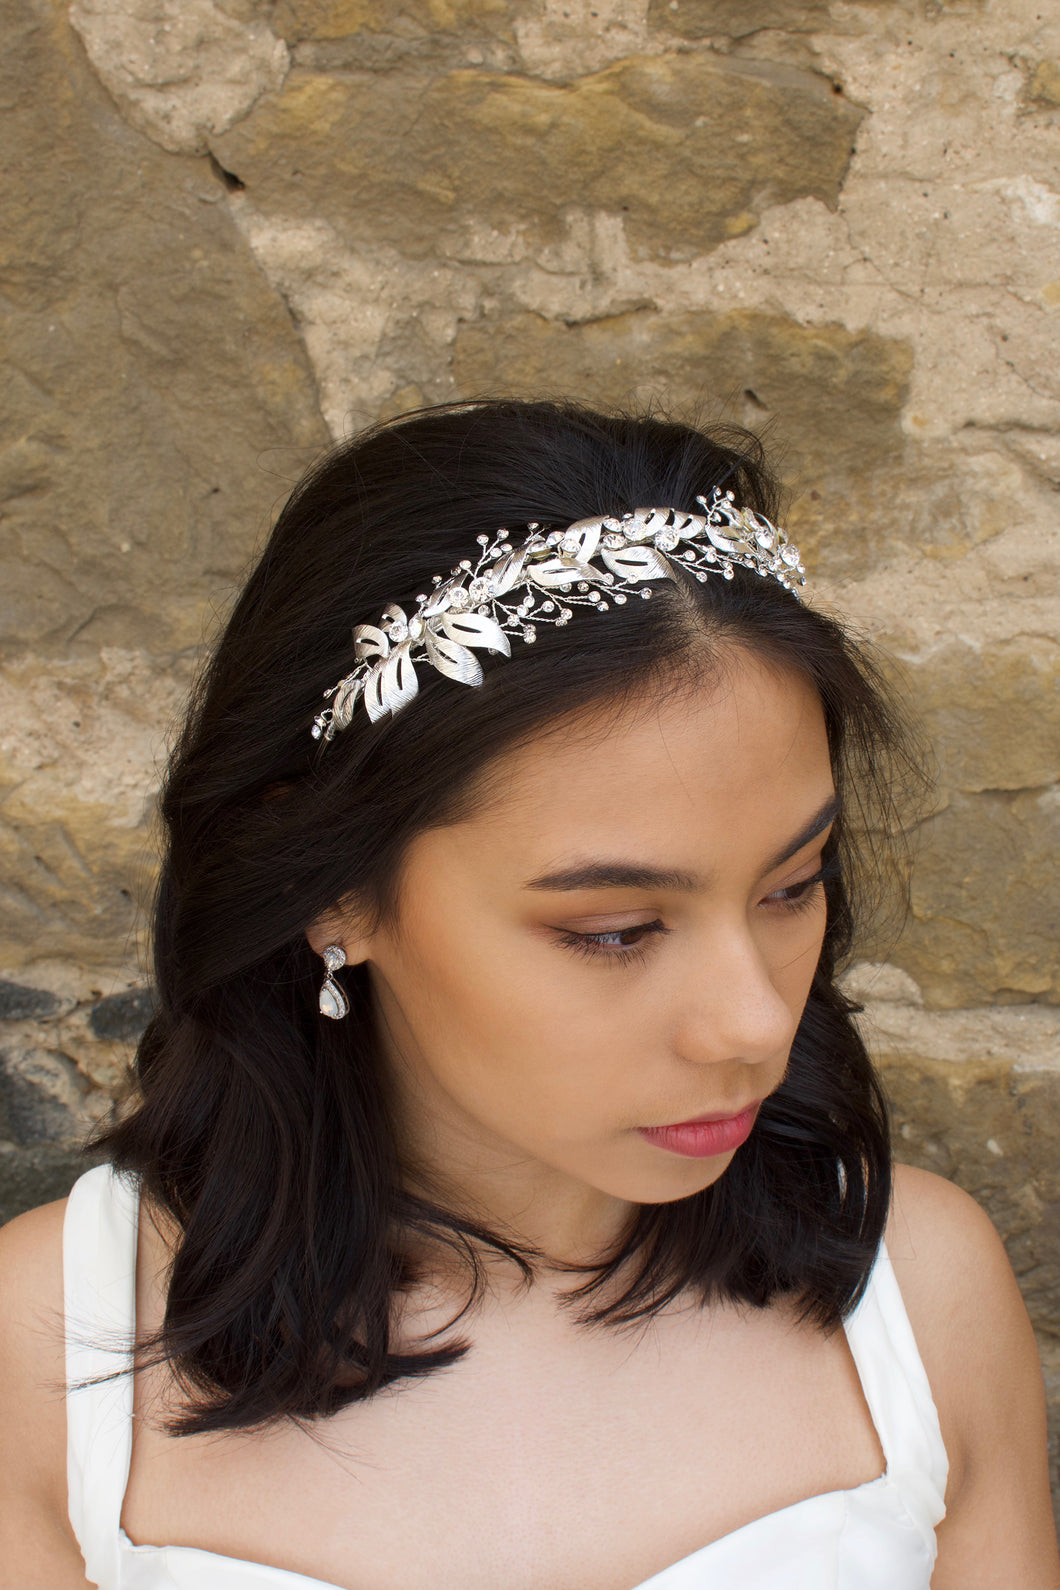 A silver bridal headband is worn by a black haired model with a stone wall in the background